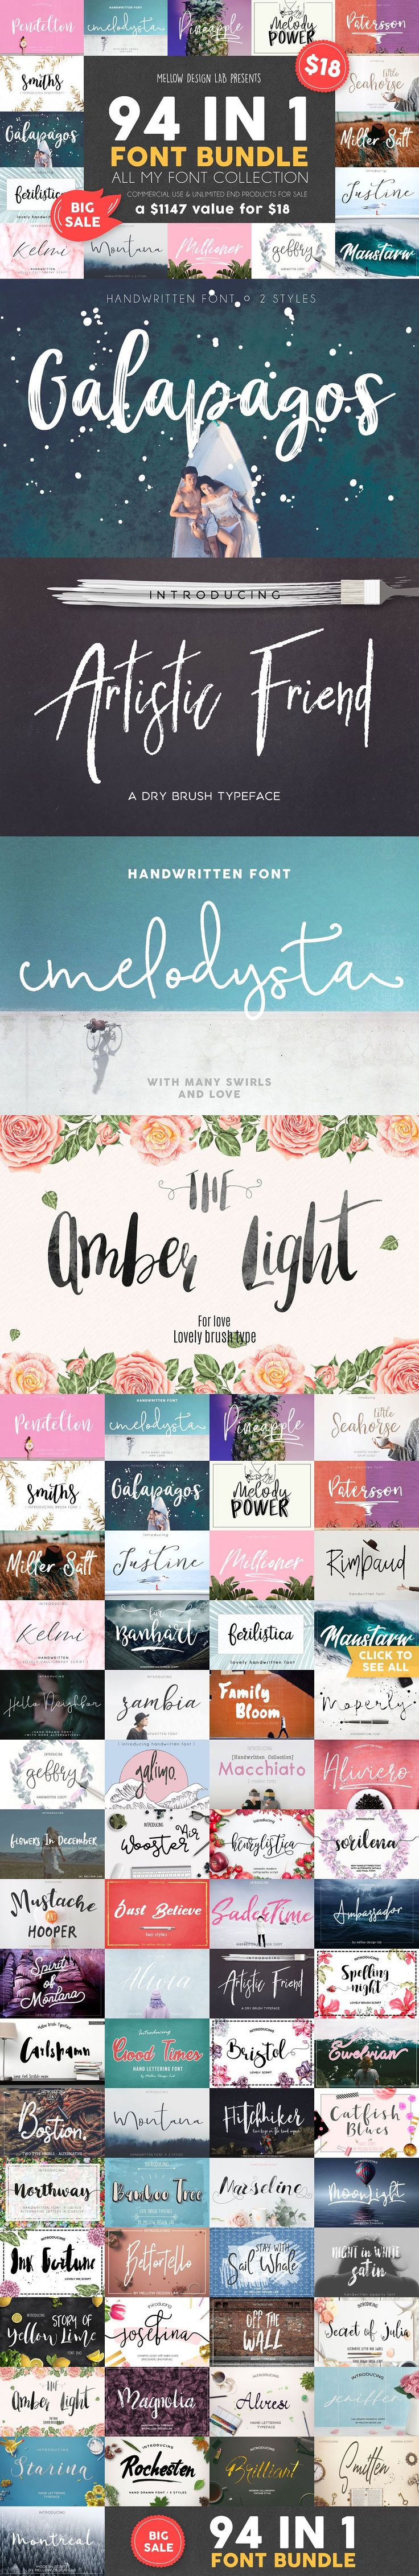 94 IN 1 Font Bundle SALE ( #typography #retro #logodesign #print #inspiration #typeface #decorative #scrapbooking #watercolor #fashion #lettering #quotes )